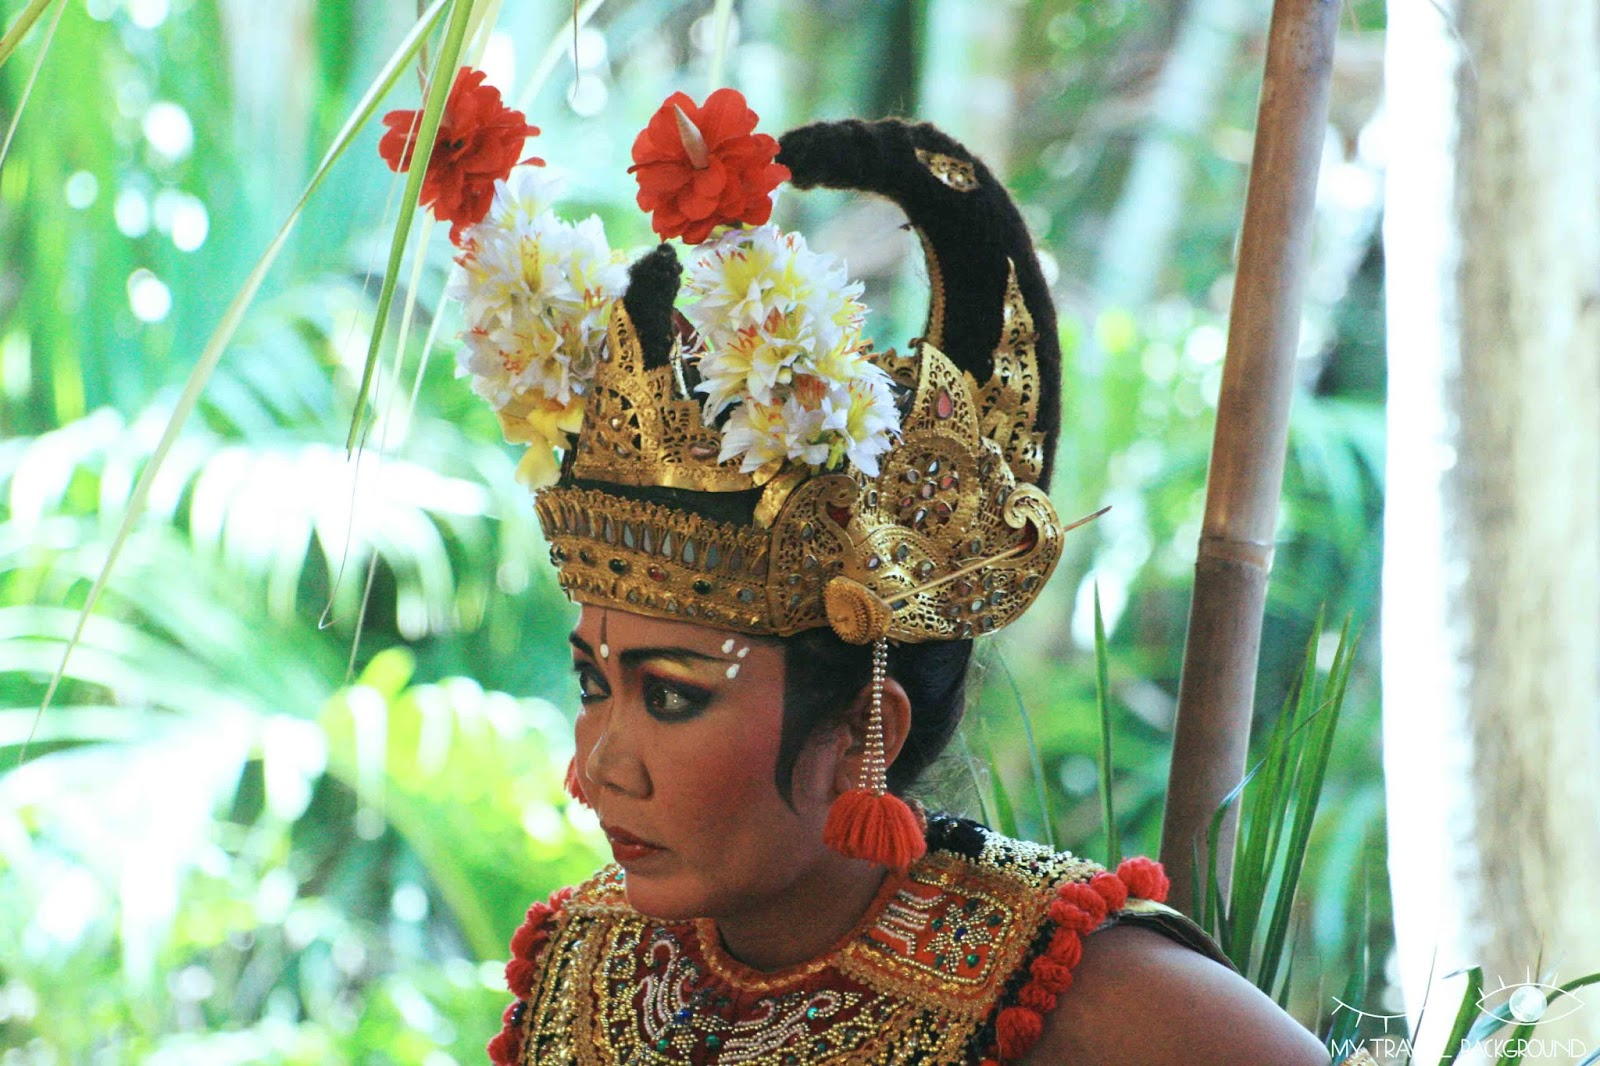 My Travel Background : 10 choses à faire à Bali - Voir une danse traditionnelle